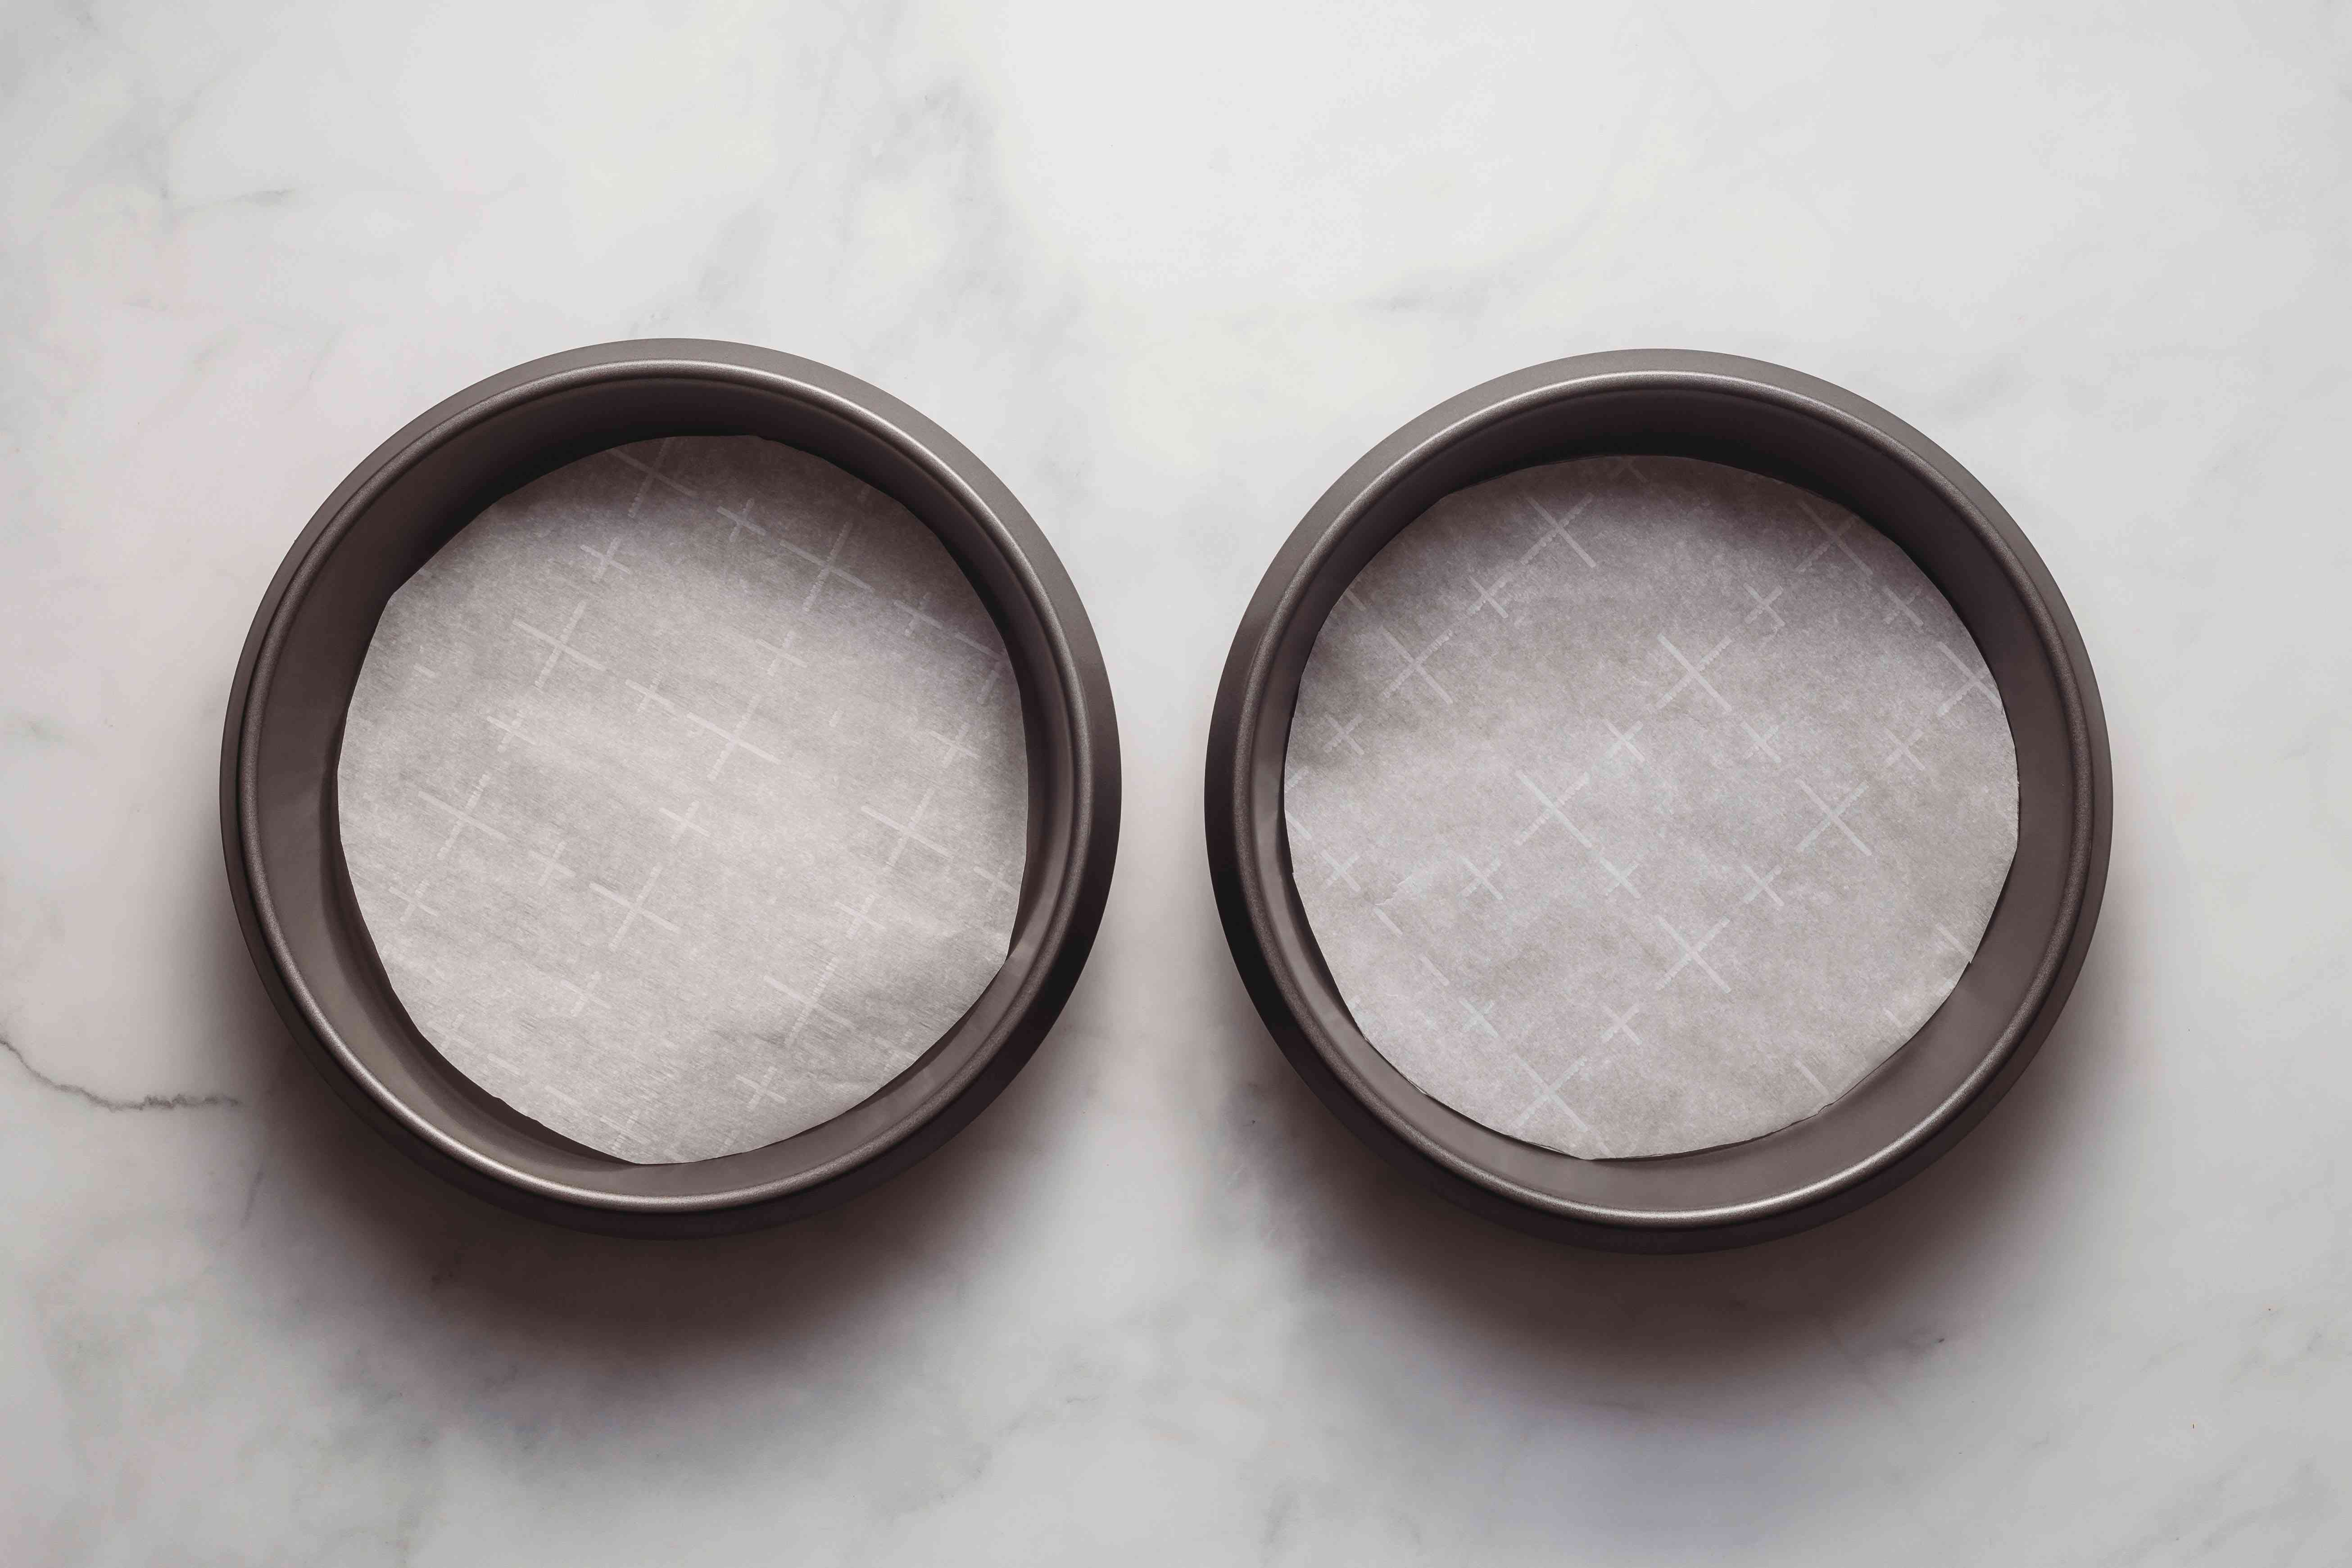 Grease and line two round cake pans with parchment paper